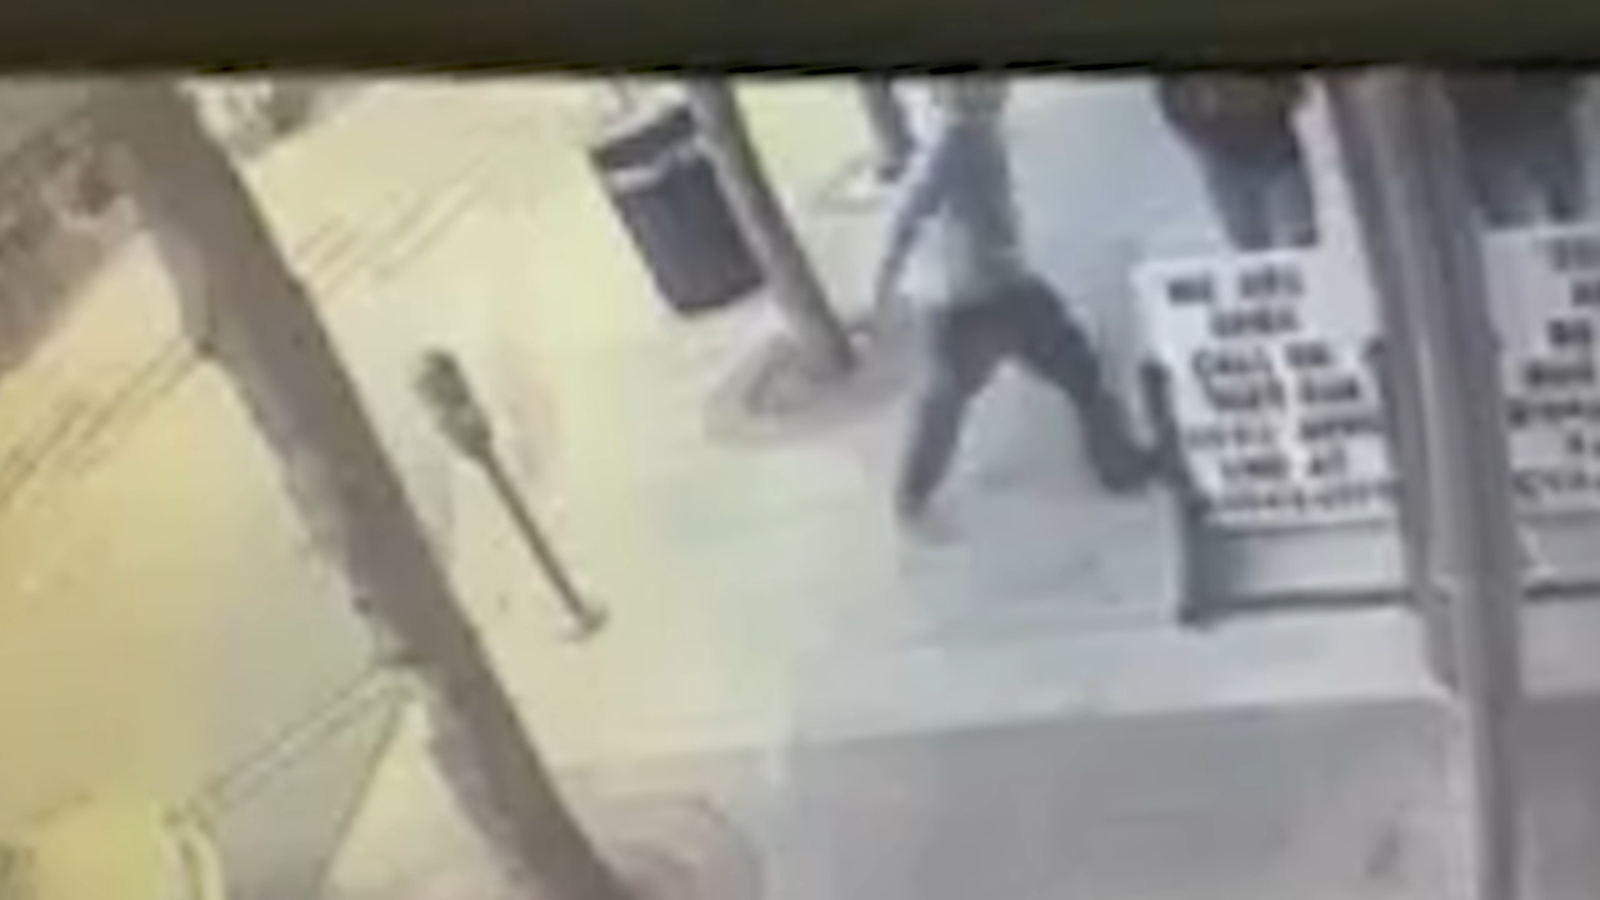 abc7news.com: EXCLUSIVE: SF woman narrowly misses attack after senior, teen punched in the head along same street